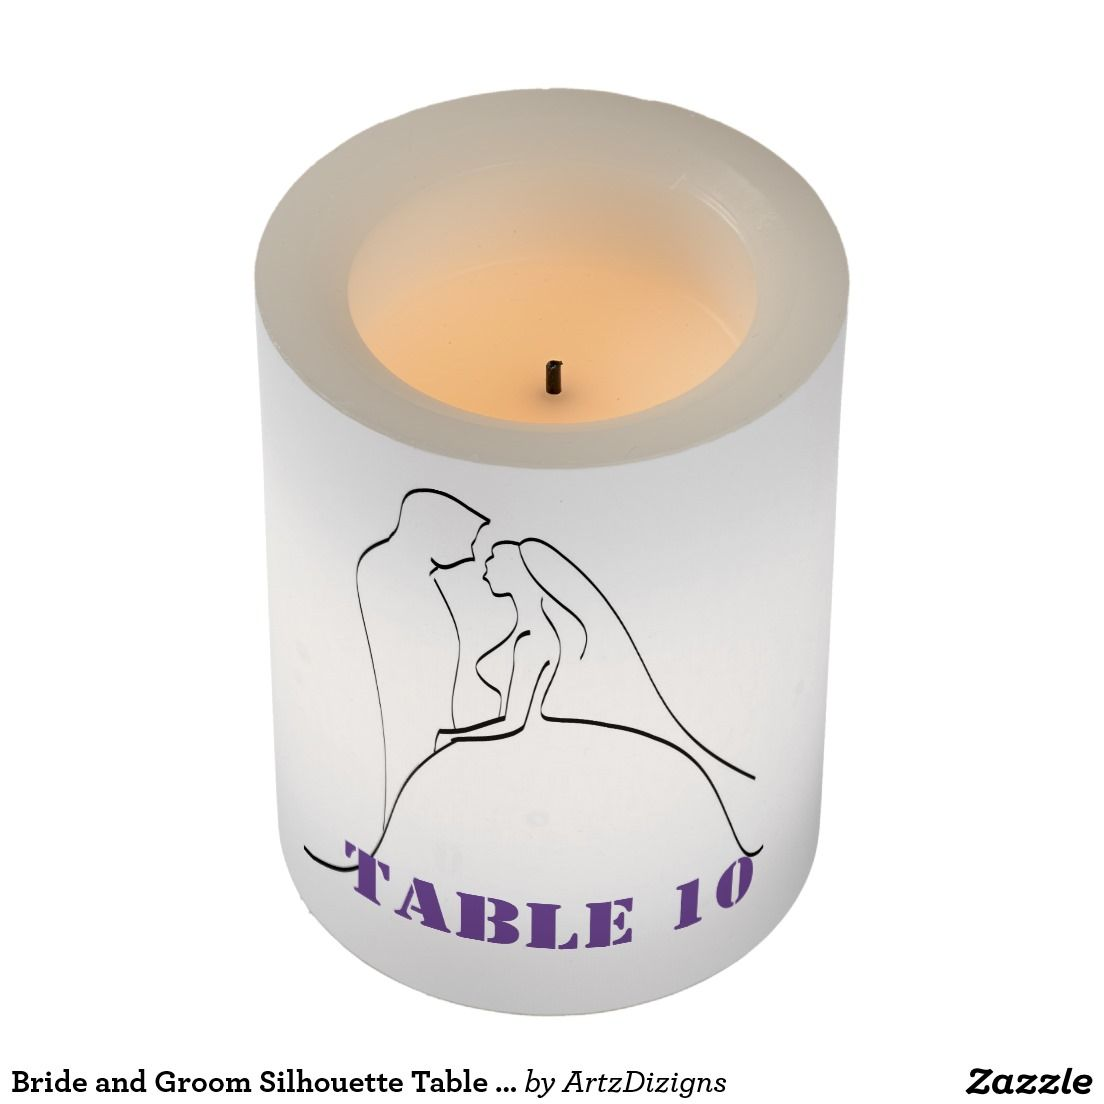 Bride and Groom Silhouette Table 10 - Candle  http://www.zazzle.com/artzdizigns&rf=238365382999242687